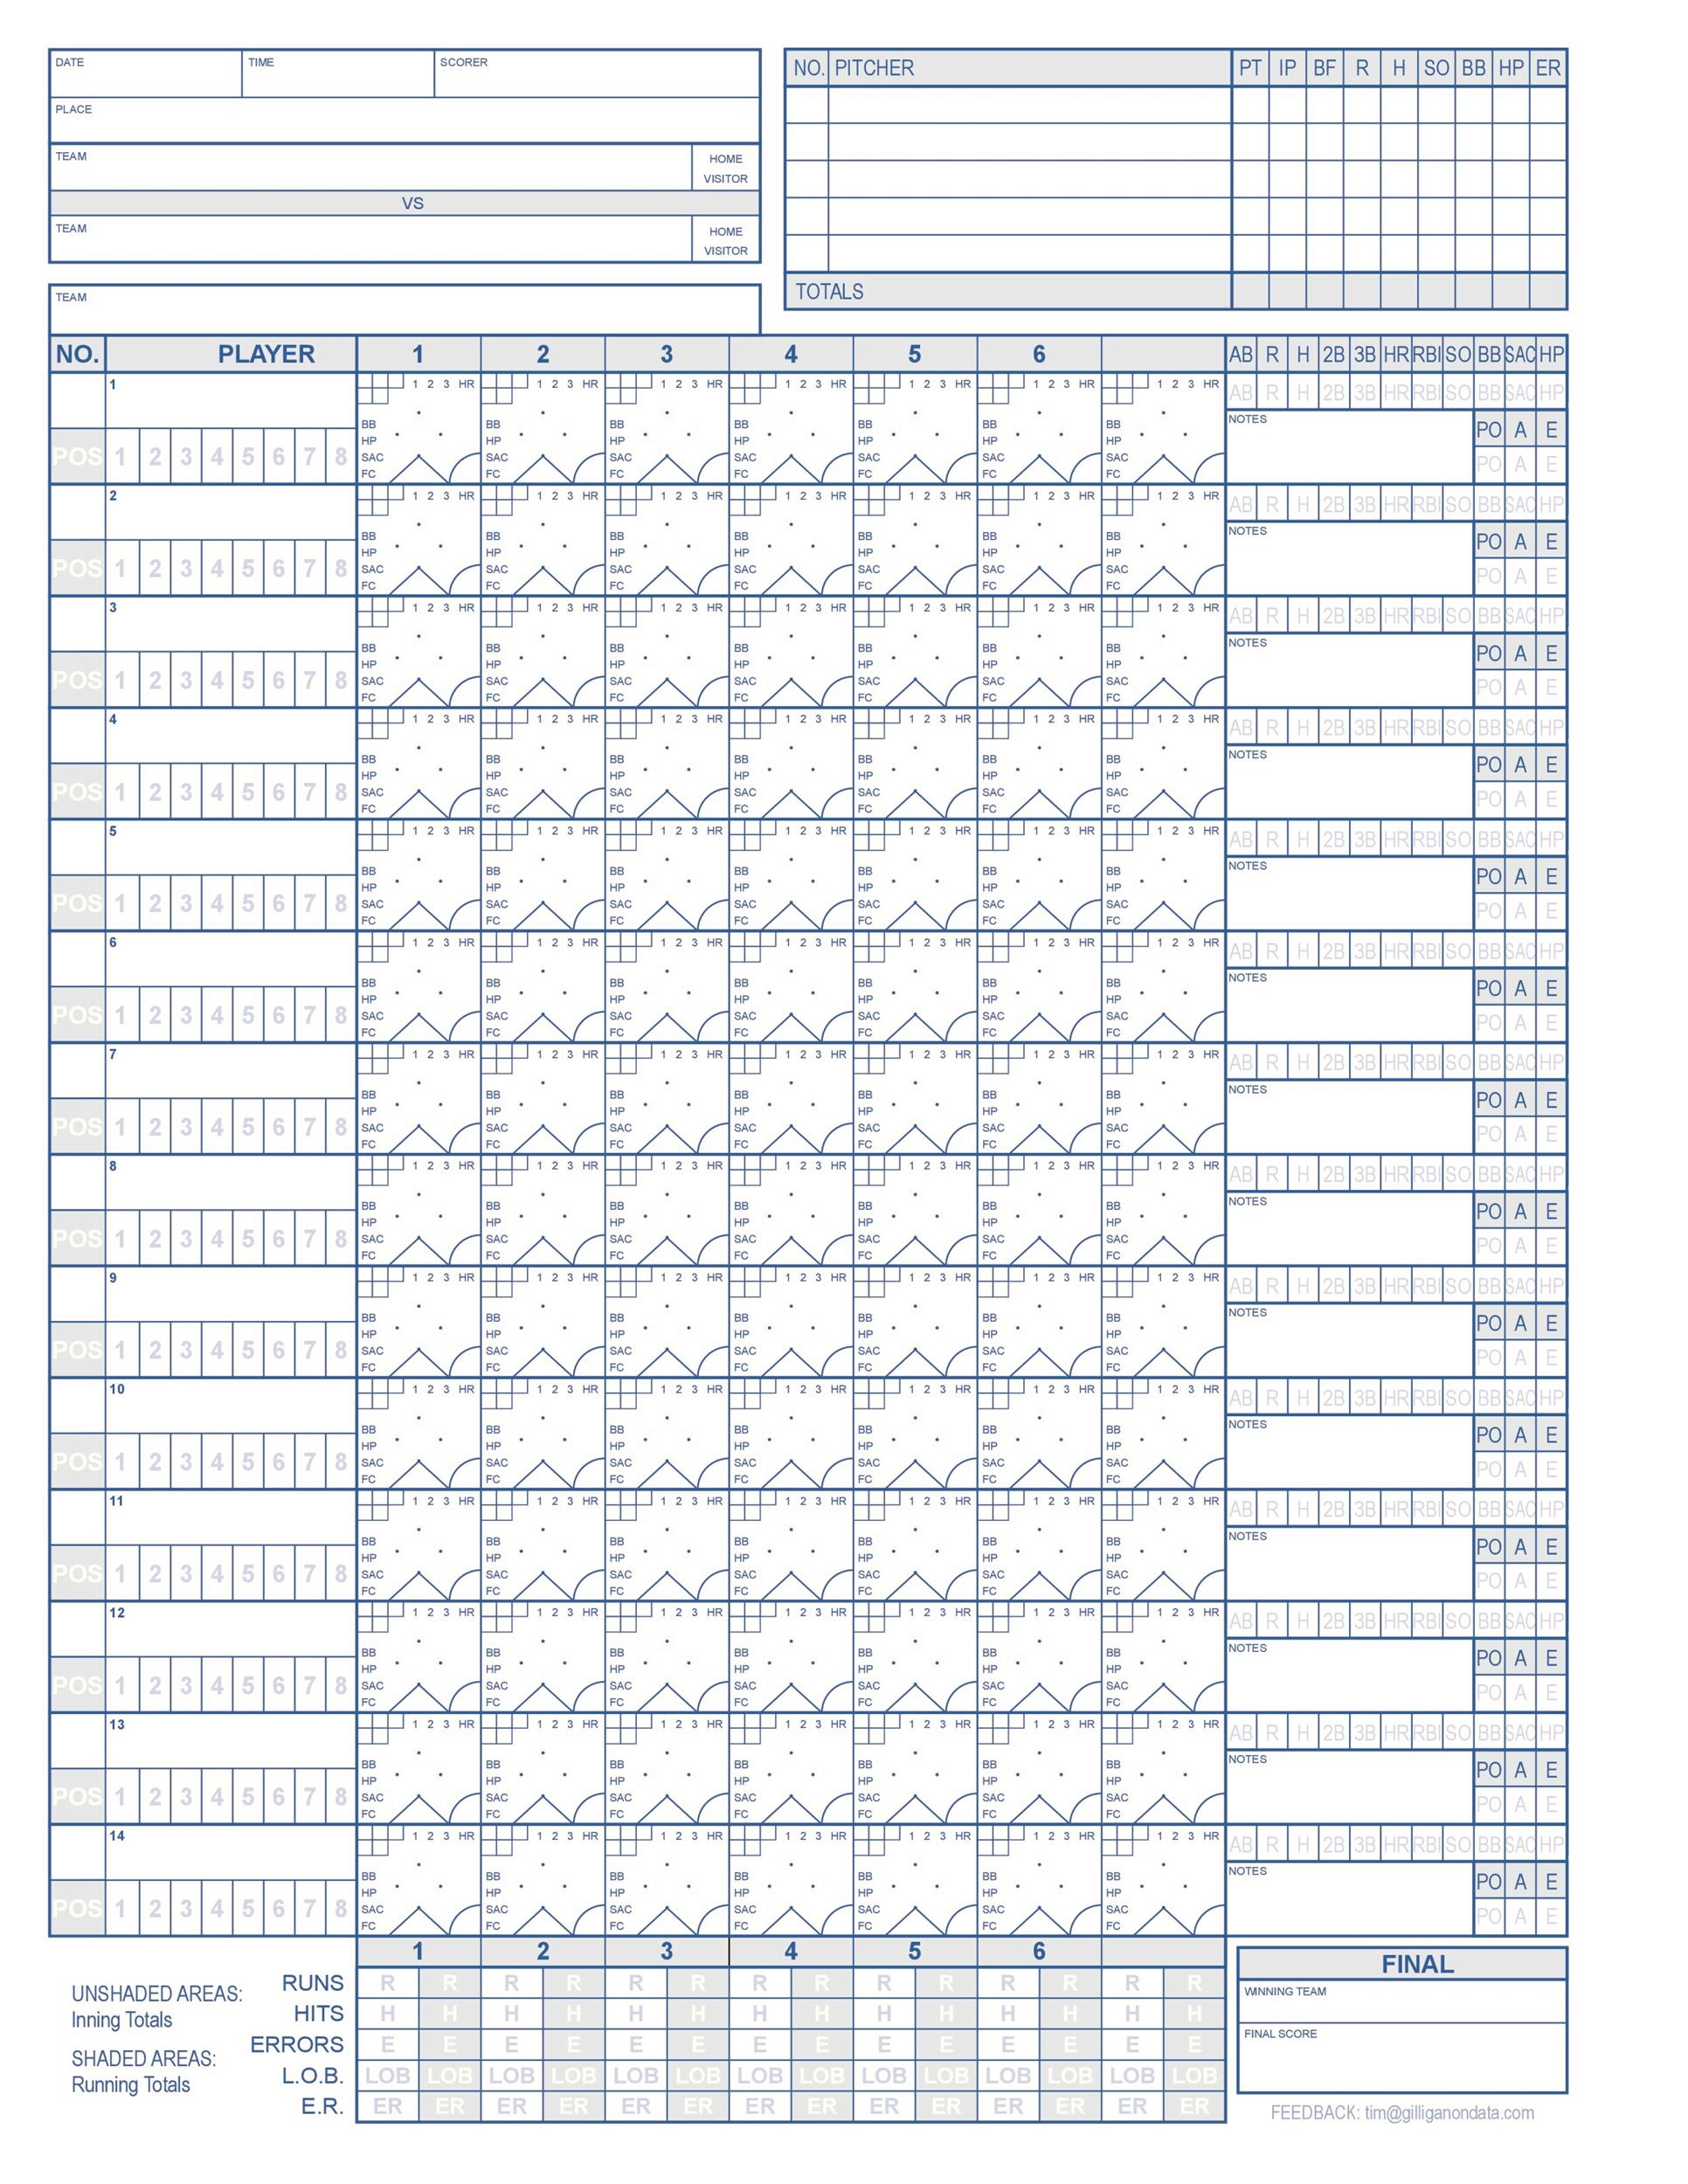 Baseball Roster Template Baseball Lineup Card Template Free